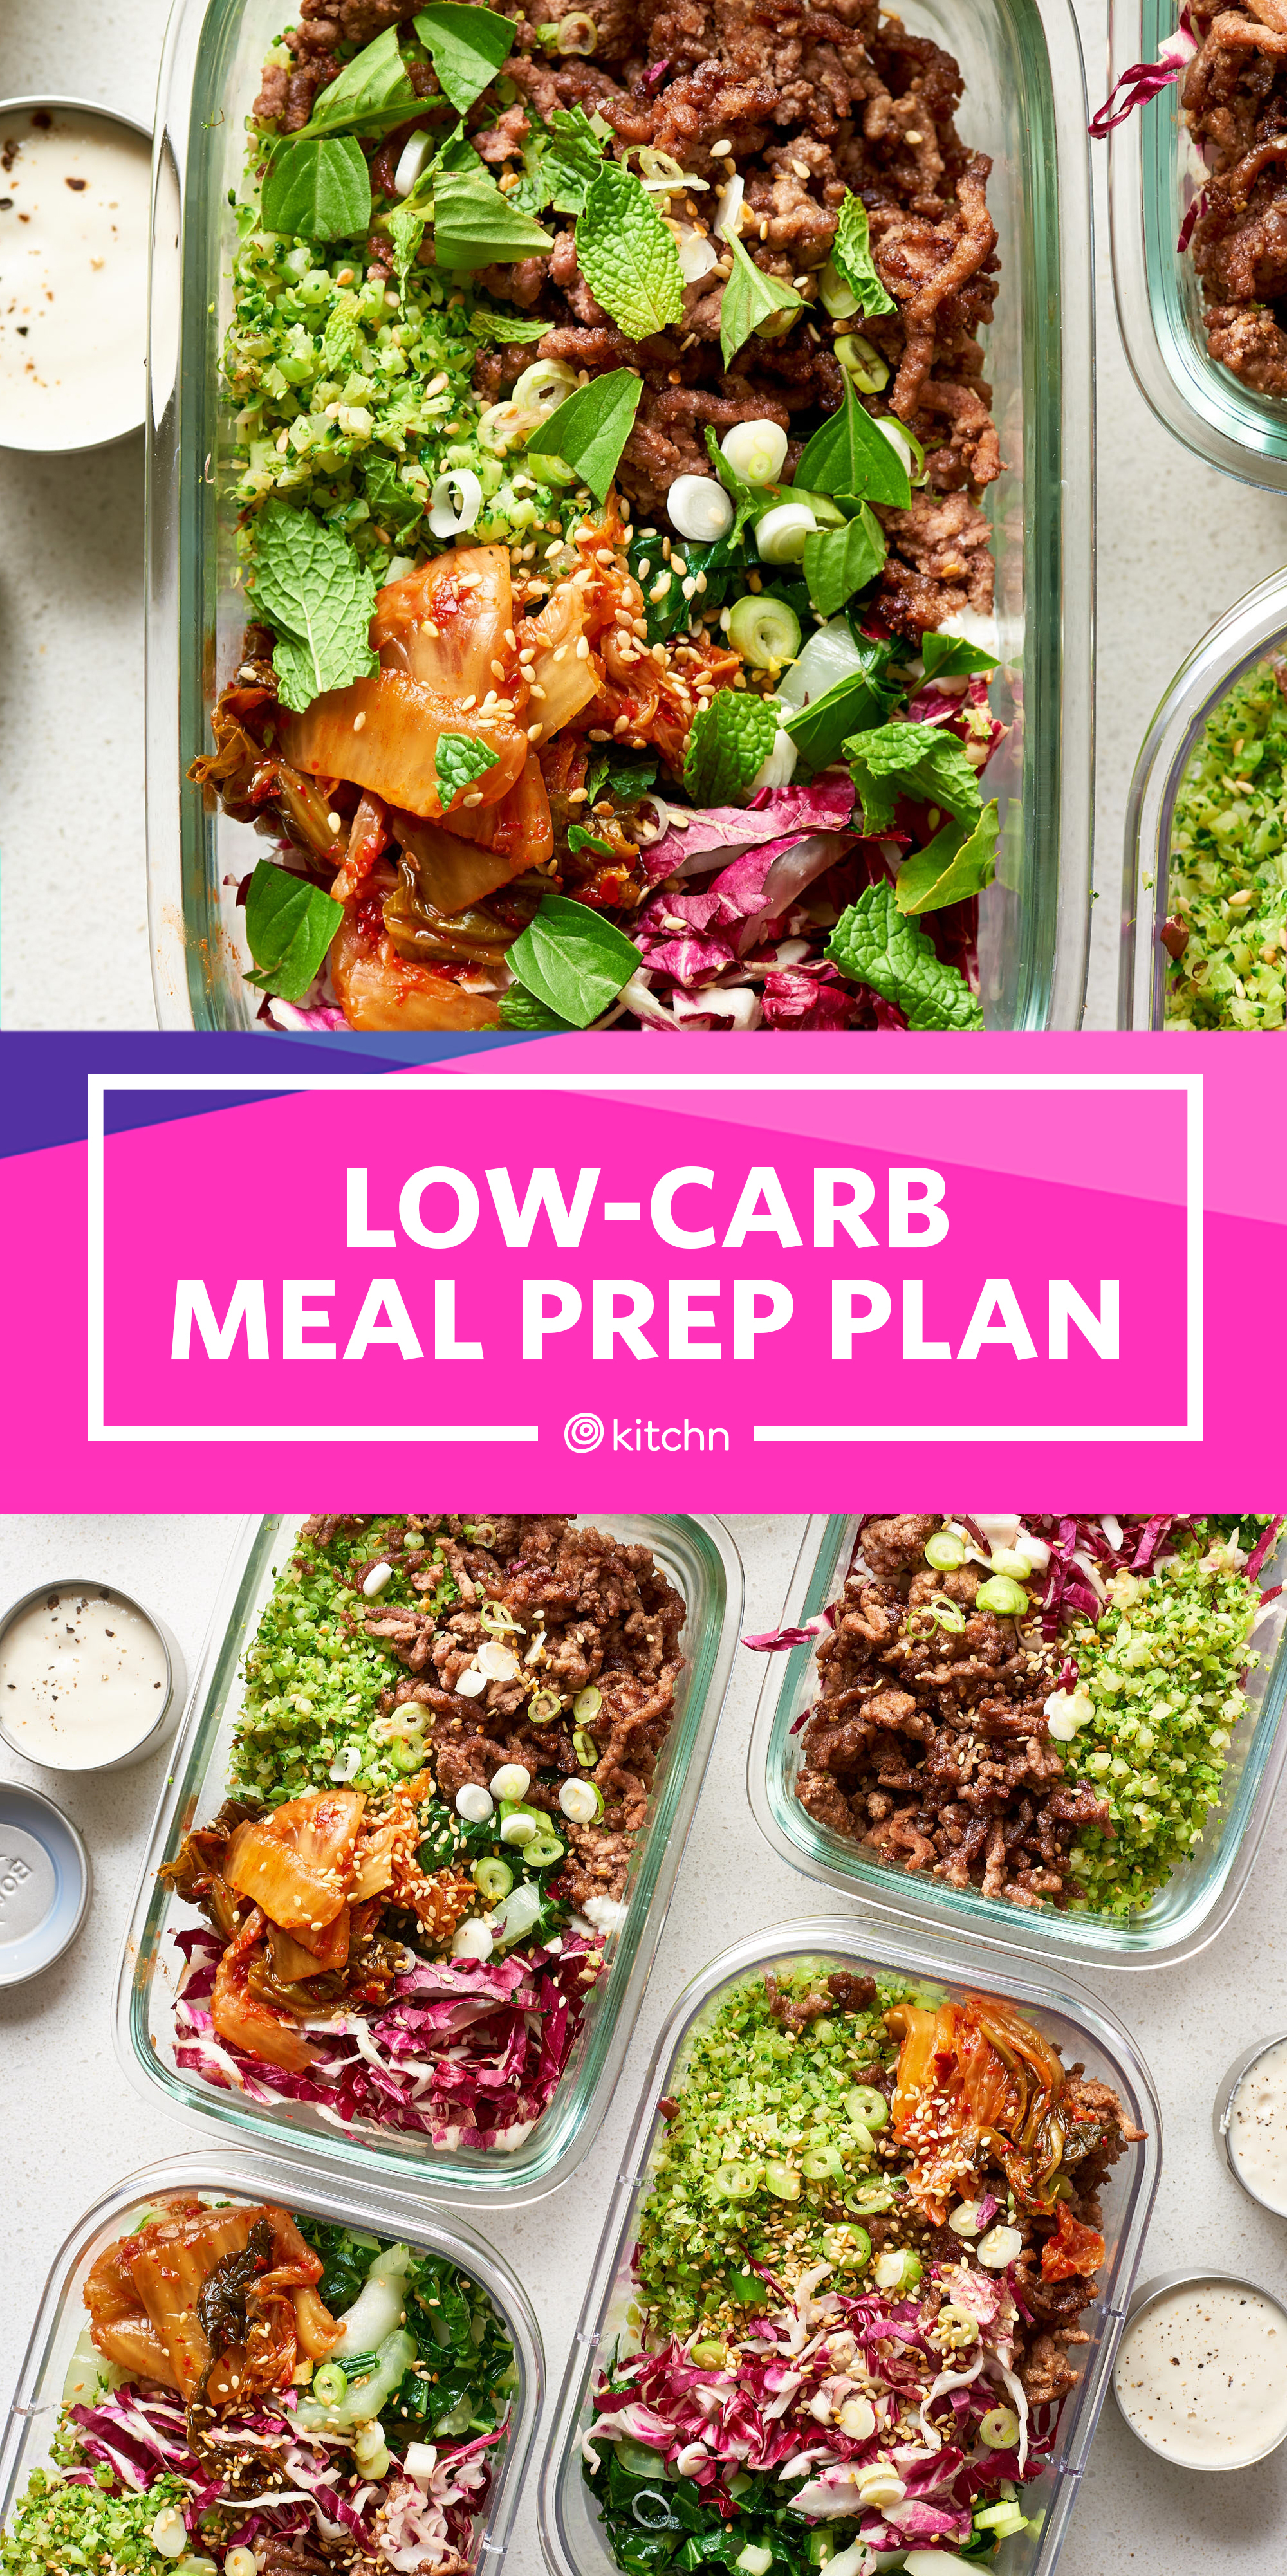 Low-Carb Meal Prep: A Week of Meals | Kitchn